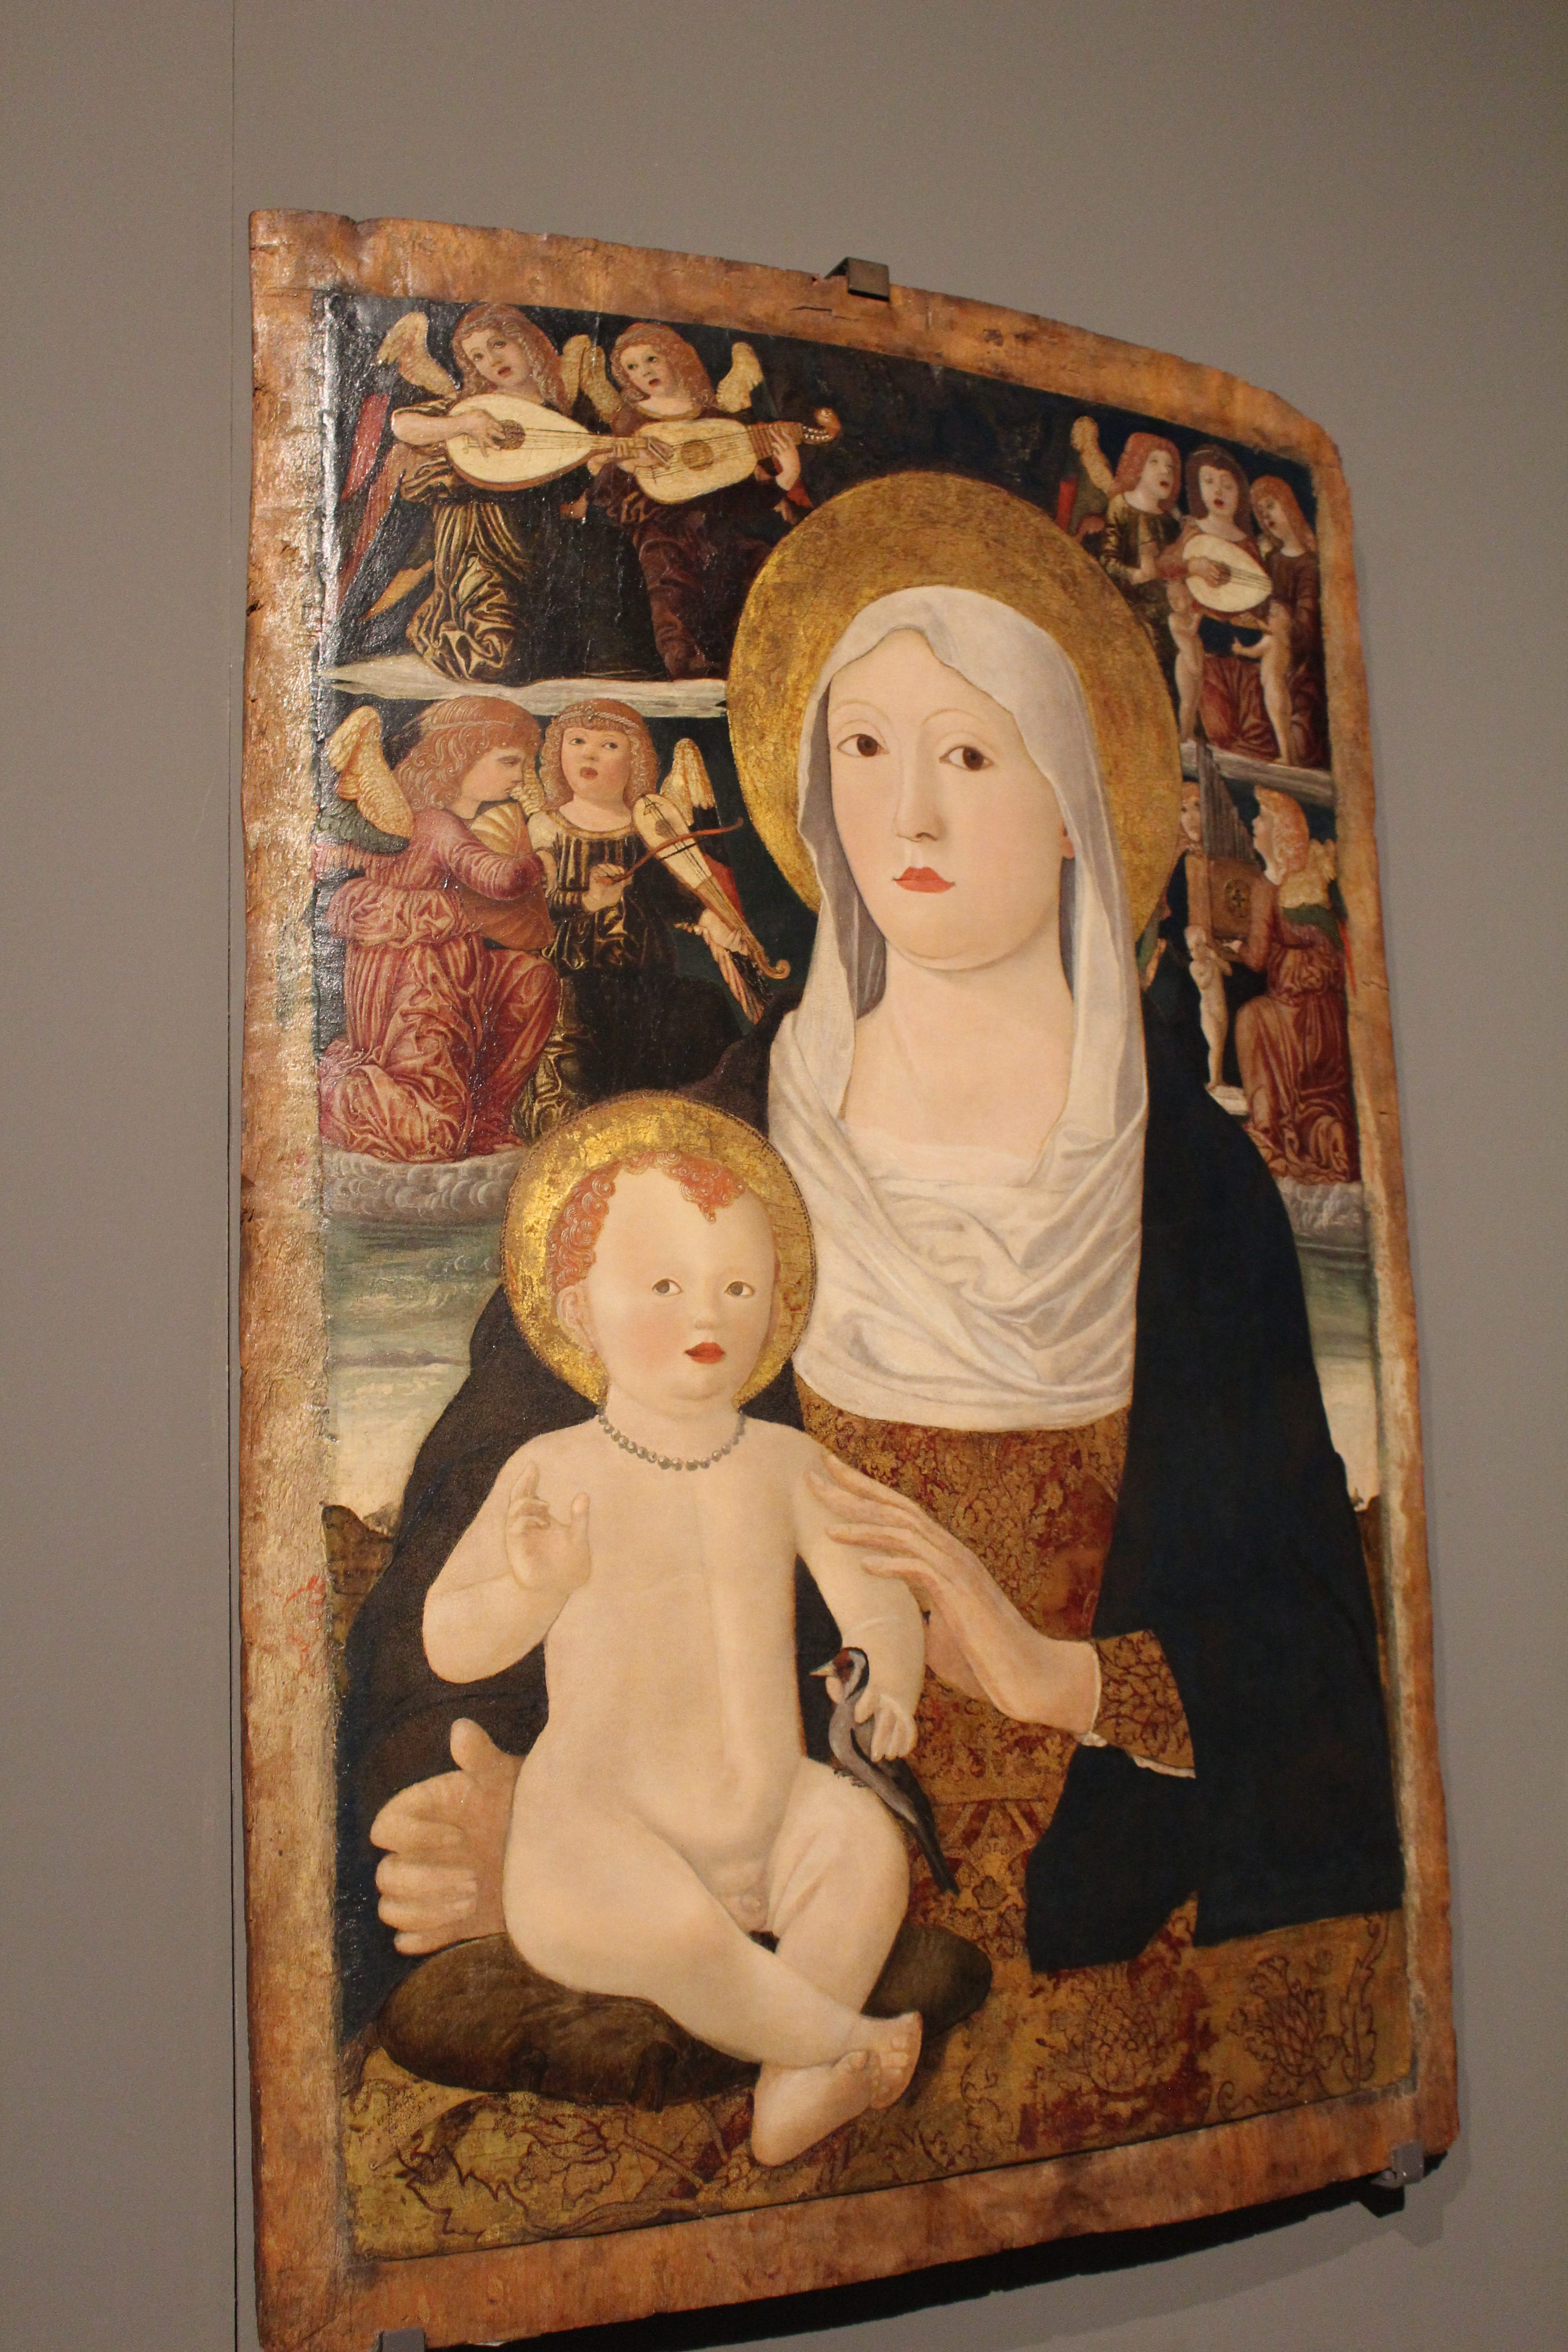 photo 9) Francesco da Tolmezzo: Madonna and Child with Angel Musicians, tempera on board 1490-1510